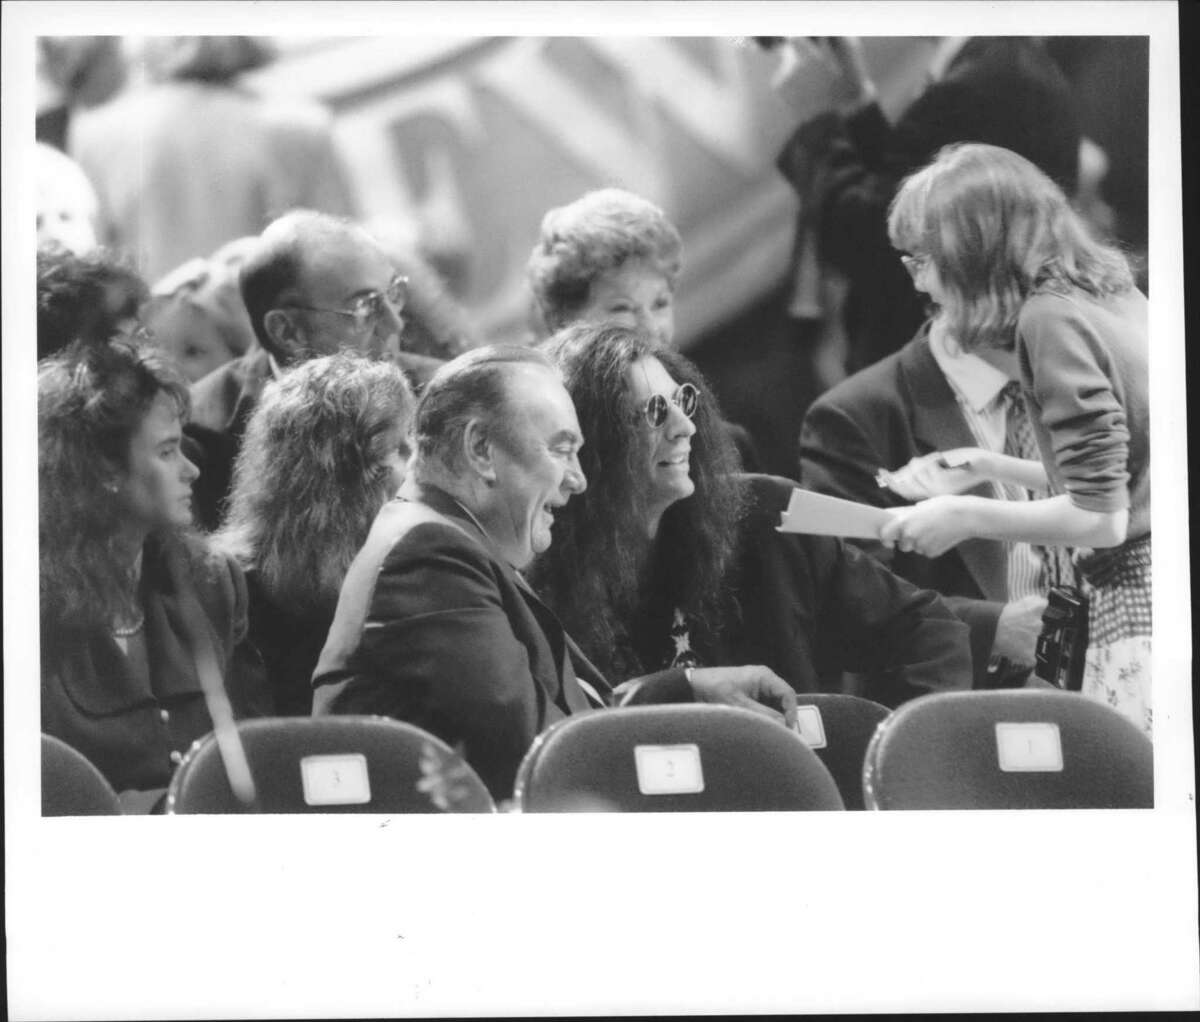 Albany, New York - Former New York Governor Hugh Carey sits with celebrity Disc Jockey Howard Stern as a Stern fan asks for an autograph. January 1, 1995 (John Carl D'Annibale/Times Union Archive)